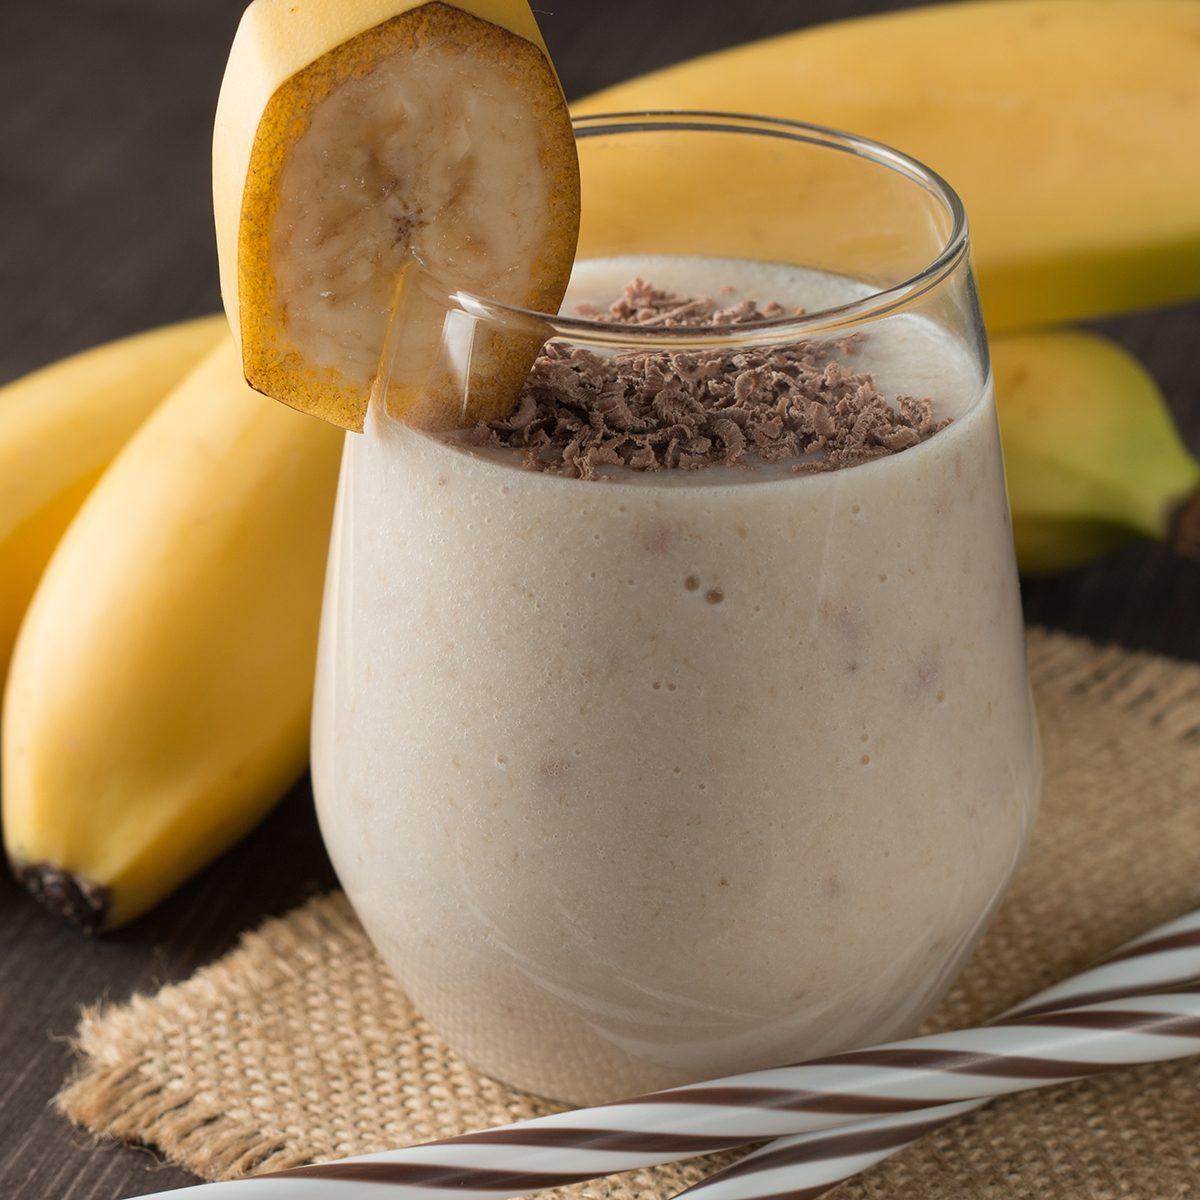 Photo of fresh Made Chocolate Banana Smoothie on a wooden table with coffee and spices.